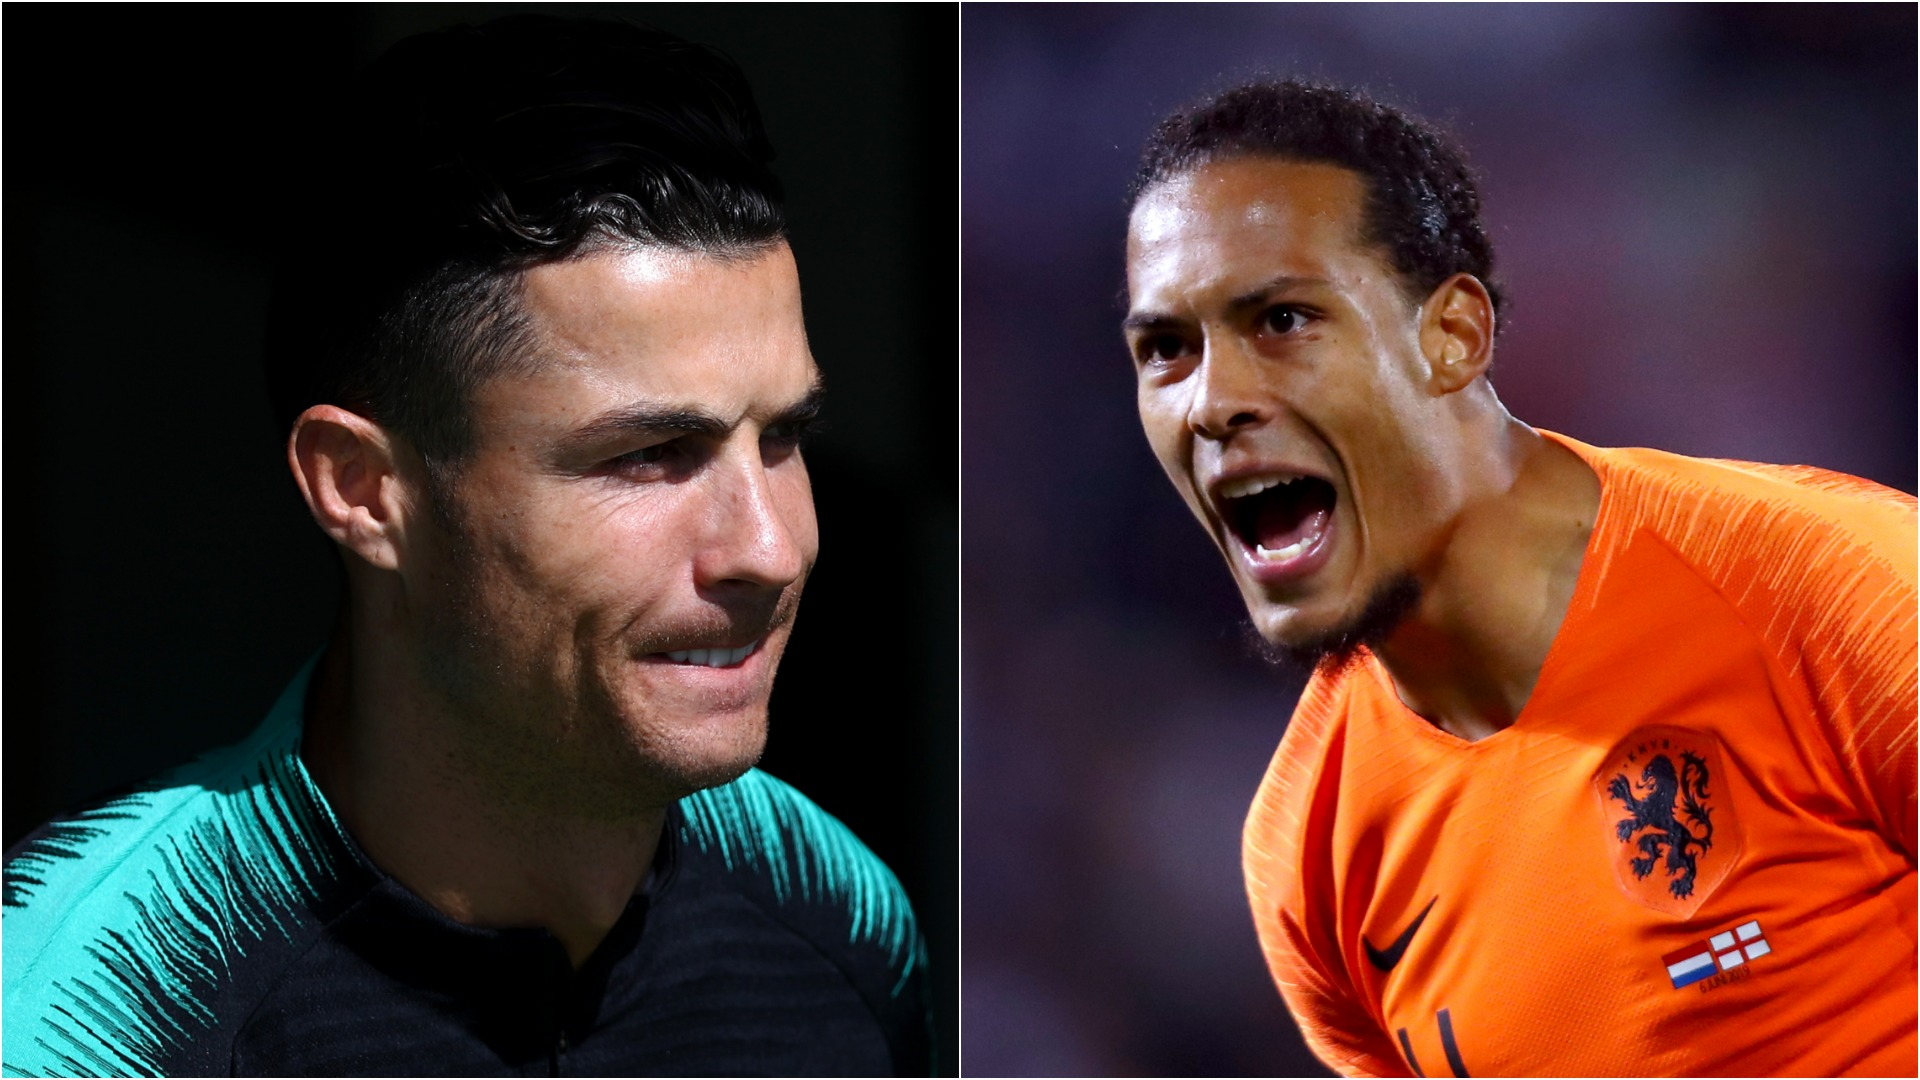 Nations League Final: Van Dijk and Ronaldo clash after stunning seasons